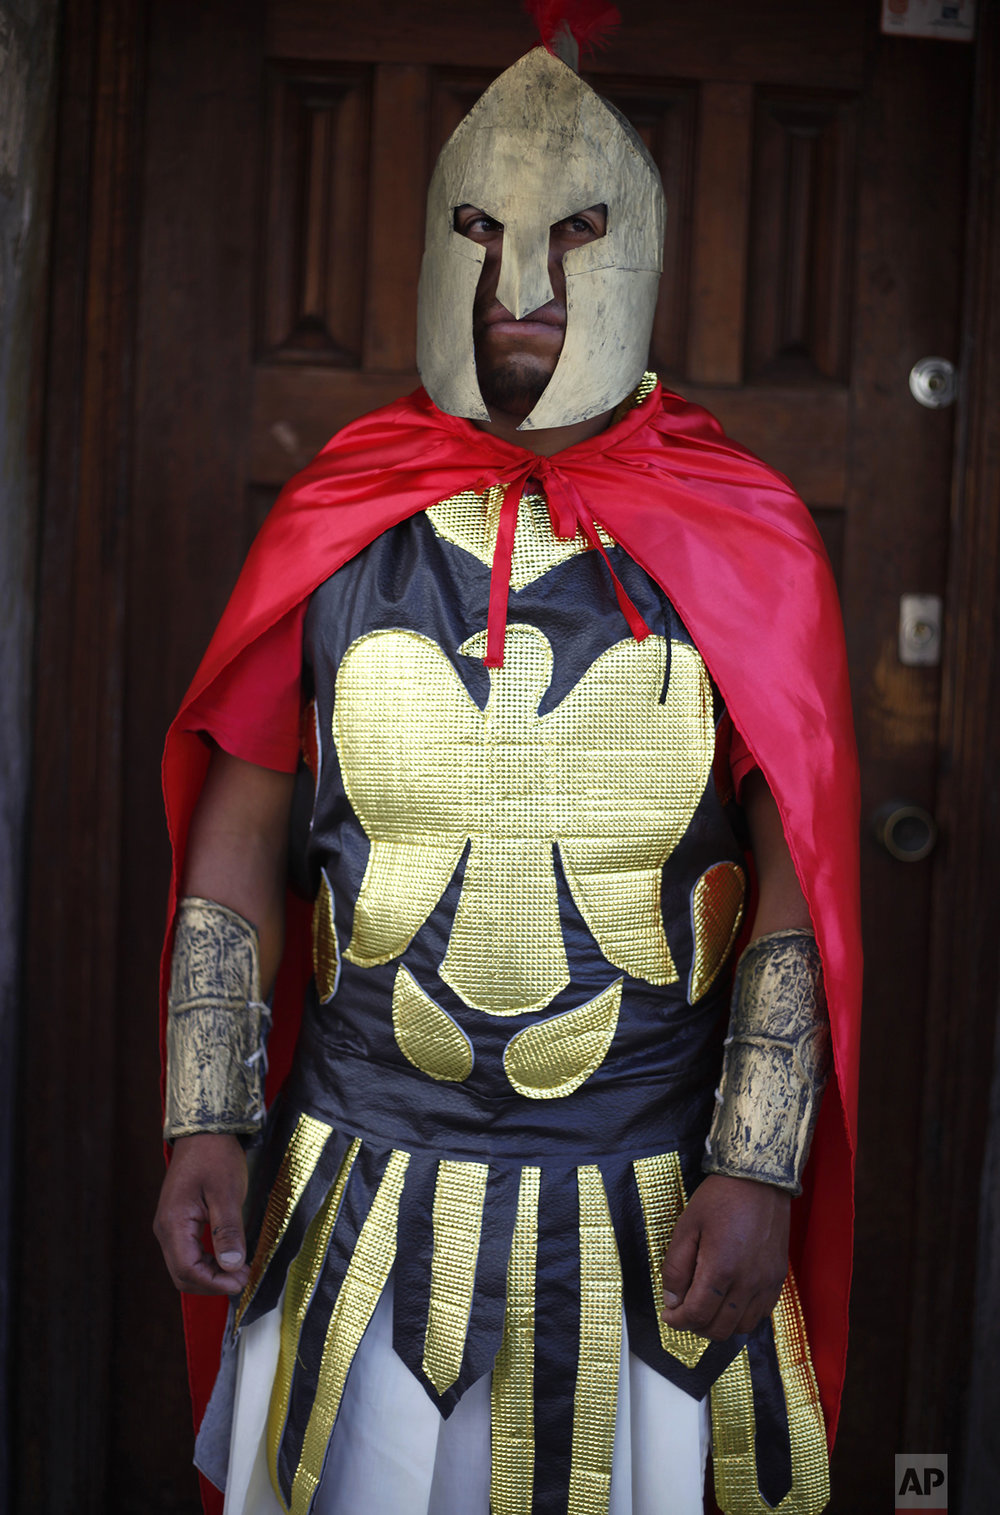 A local resident poses for a portrait dressed as a Roman soldier before participating in a reenactment of the Via Crucis, or Way of the Cross, in the village of San Mateo, some 50 km north of Mexico City, Mexico, Friday, April 14, 2017. Holy Week commemorates the last week of the earthly life of Jesus Christ culminating in his crucifixion on Good Friday and his resurrection on Easter Sunday. (AP Photo/Marco Ugarte)